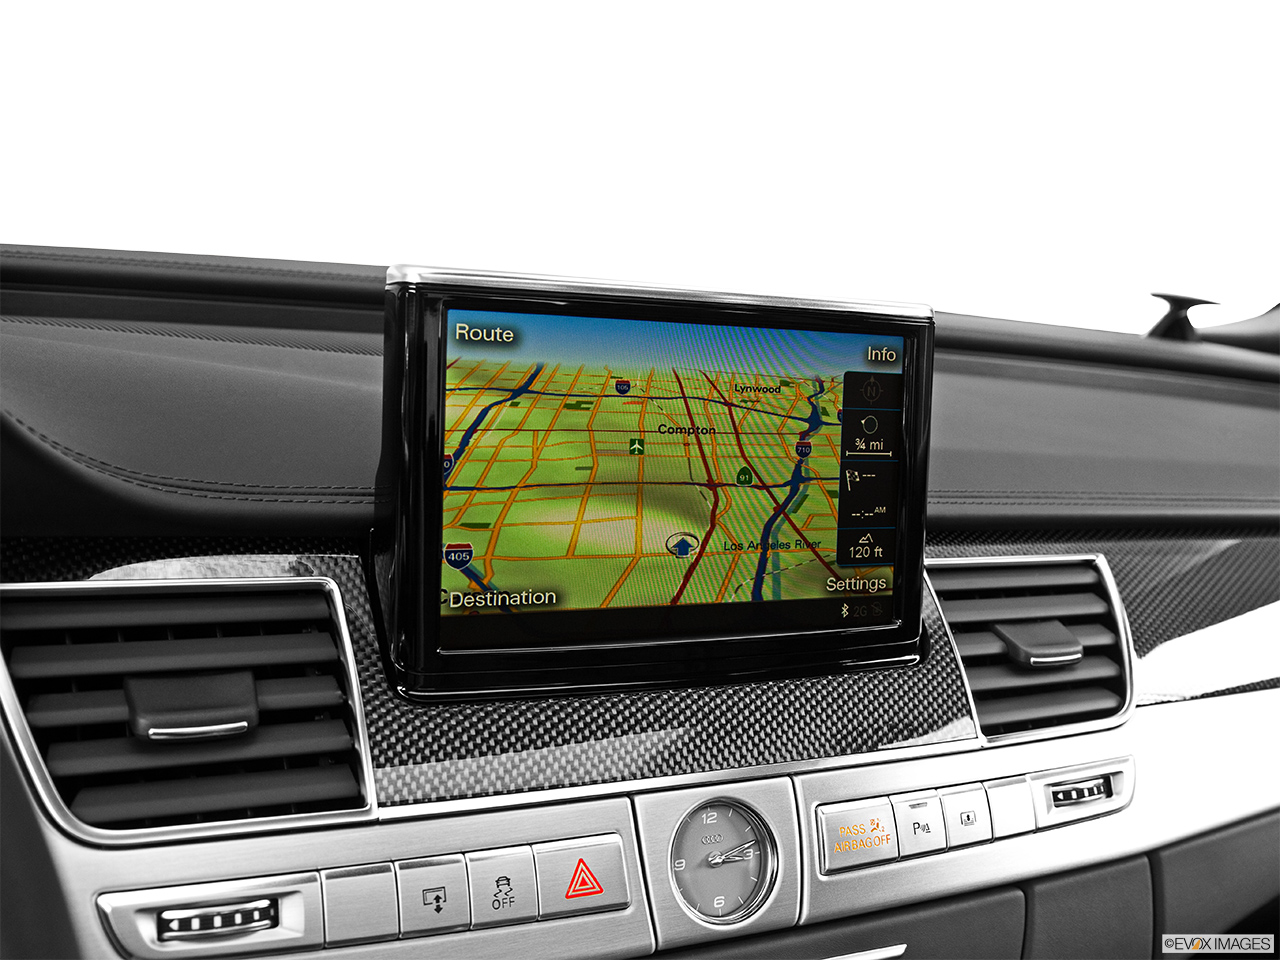 2014 Audi S8 4.0 TFSI Driver position view of navigation system.